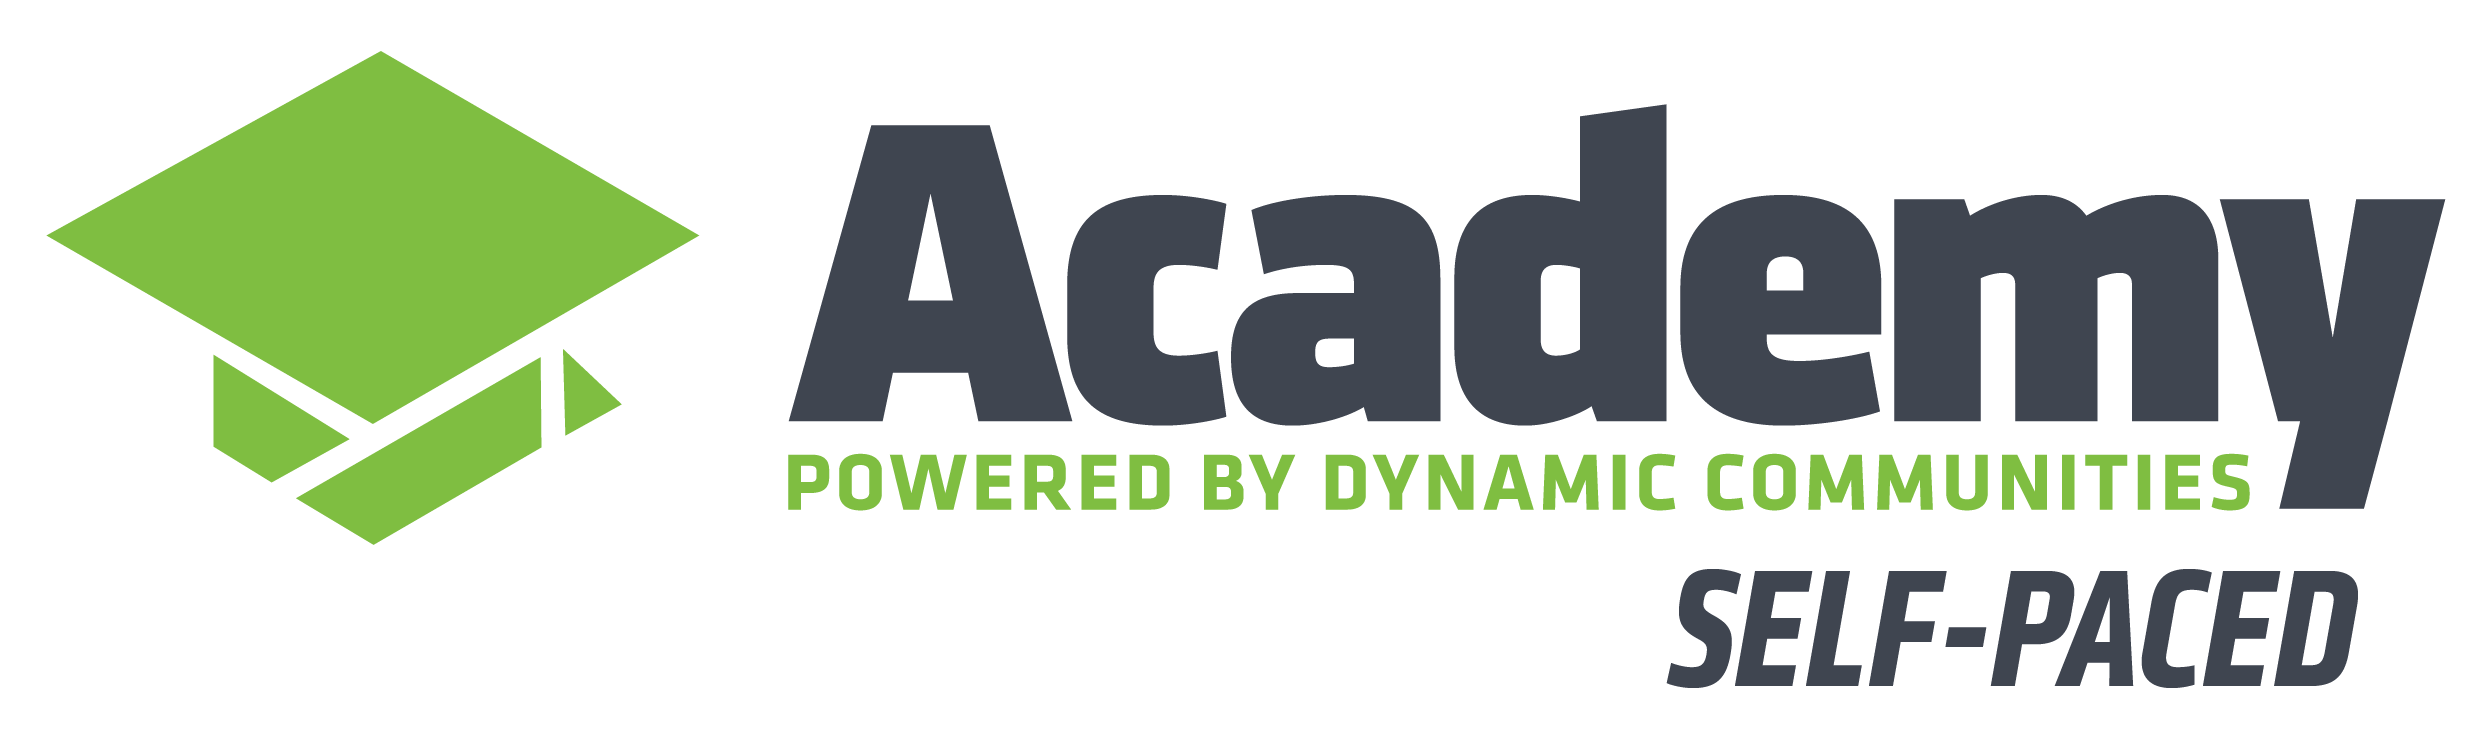 Self-Paced Academy powered by Dynamic Communities logo